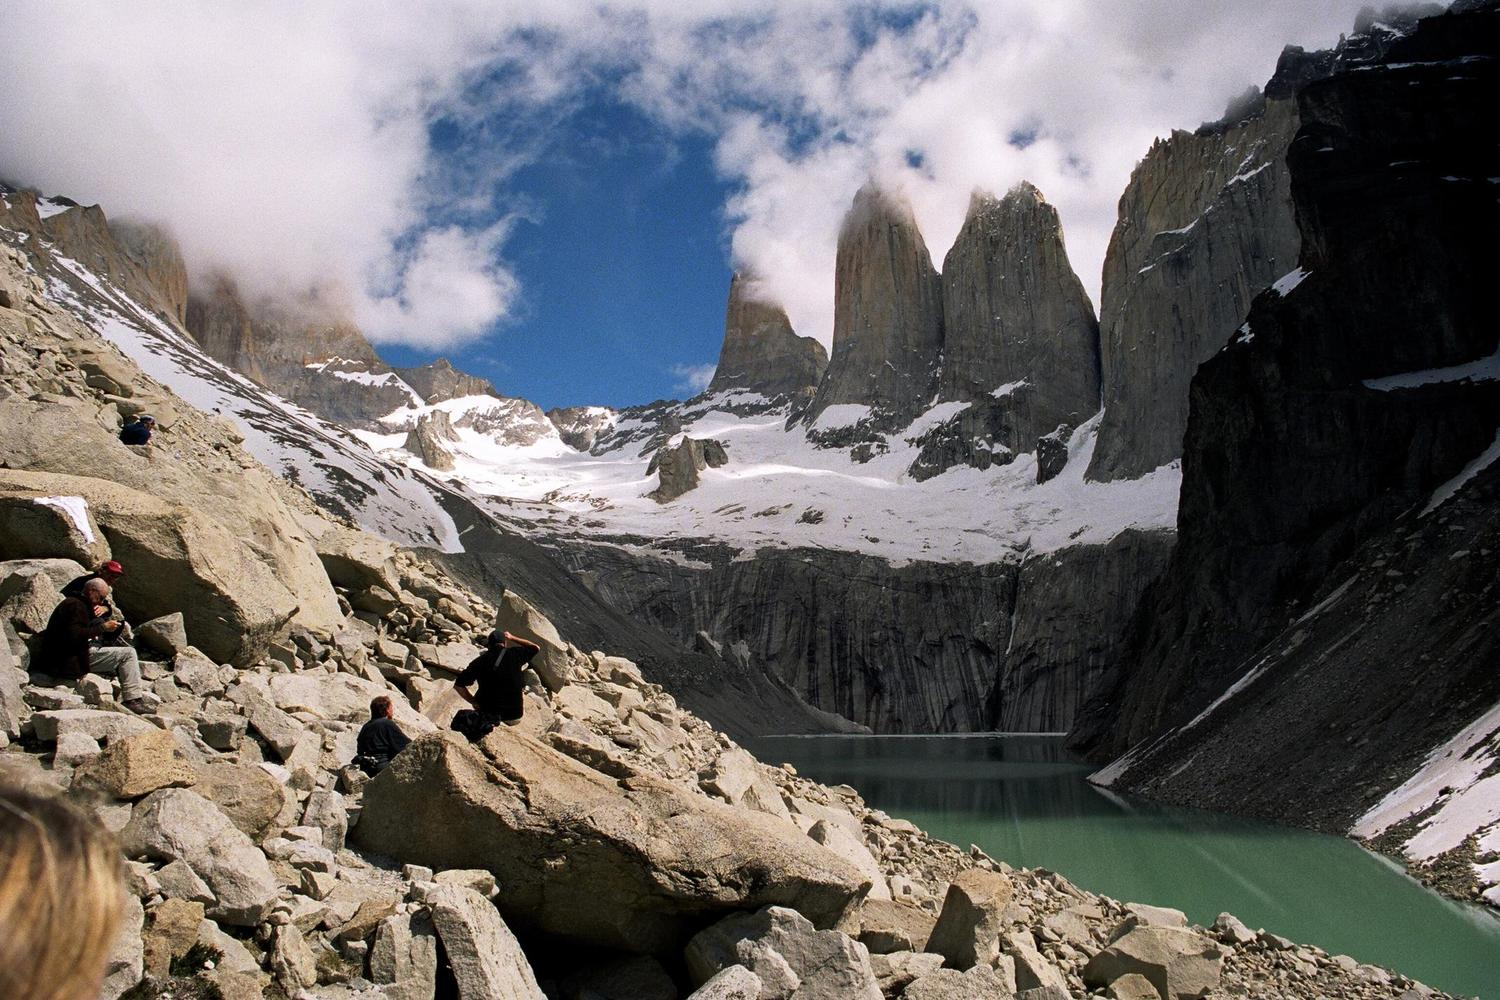 Clouds parting to reveal the peaks of the towers in Chile's Torres del Paine